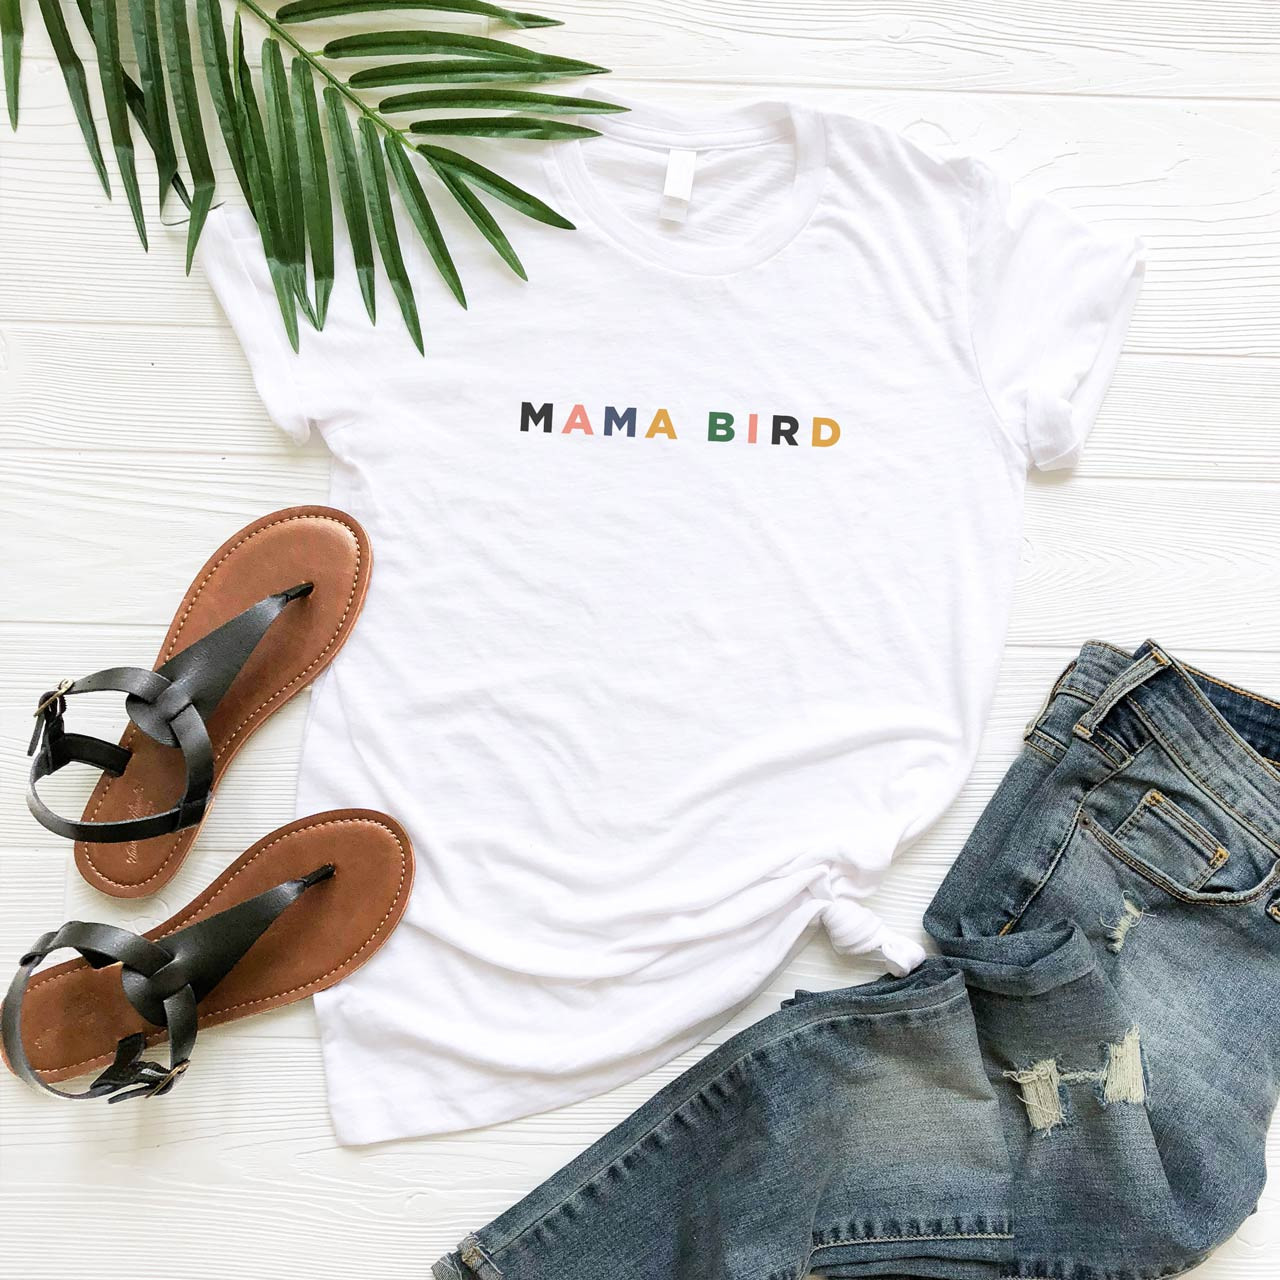 MAMA BIRD Cotton T-Shirt (Color on White) from The Printed Home